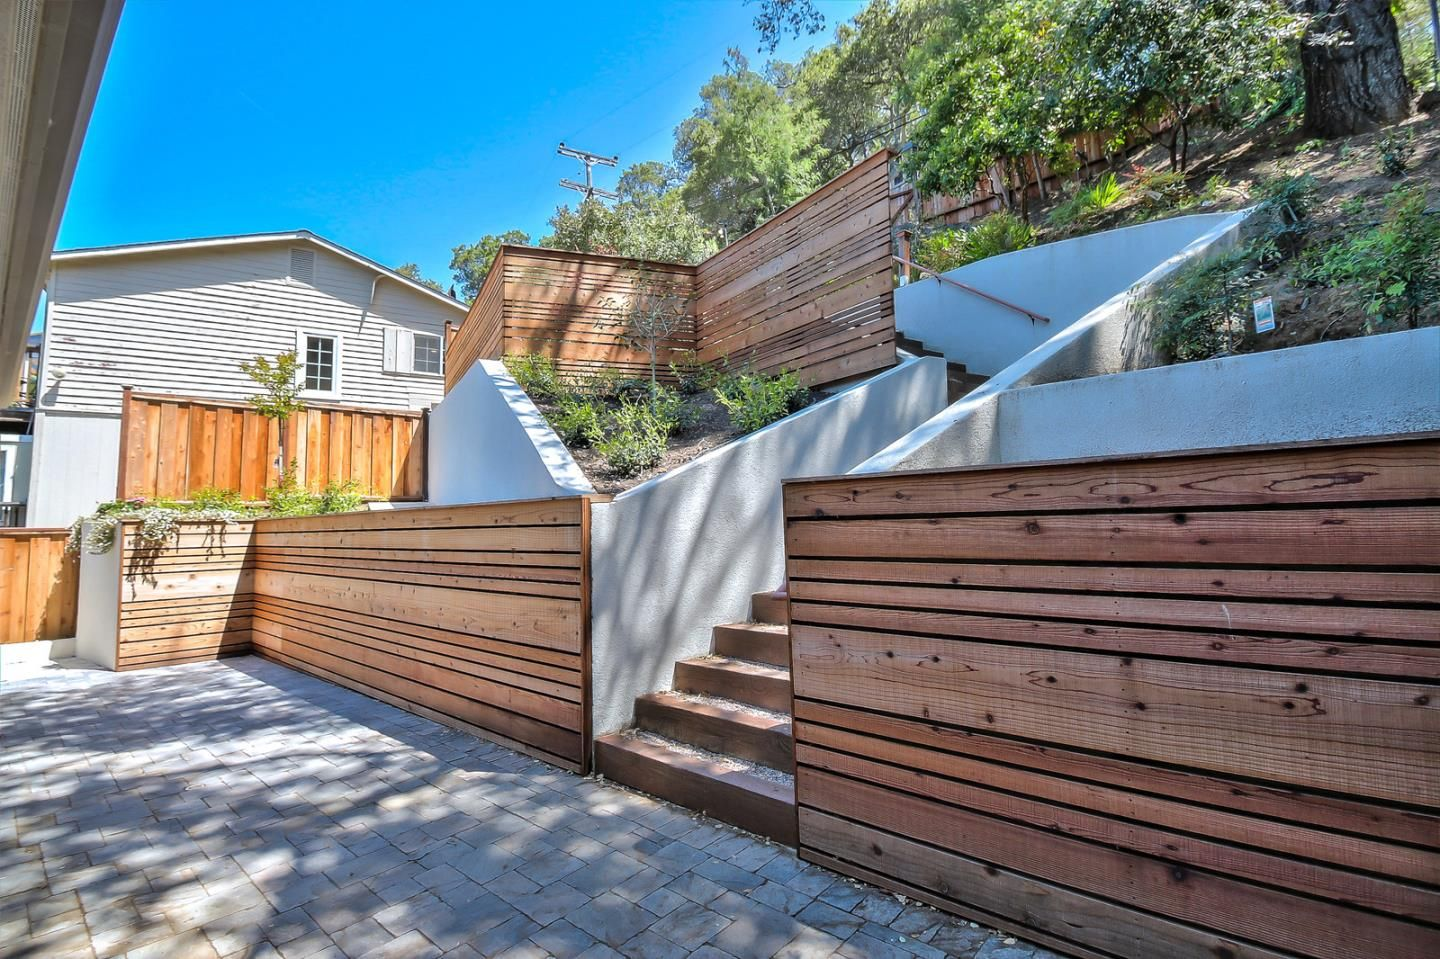 Image 1 fence screening outdoor decor home